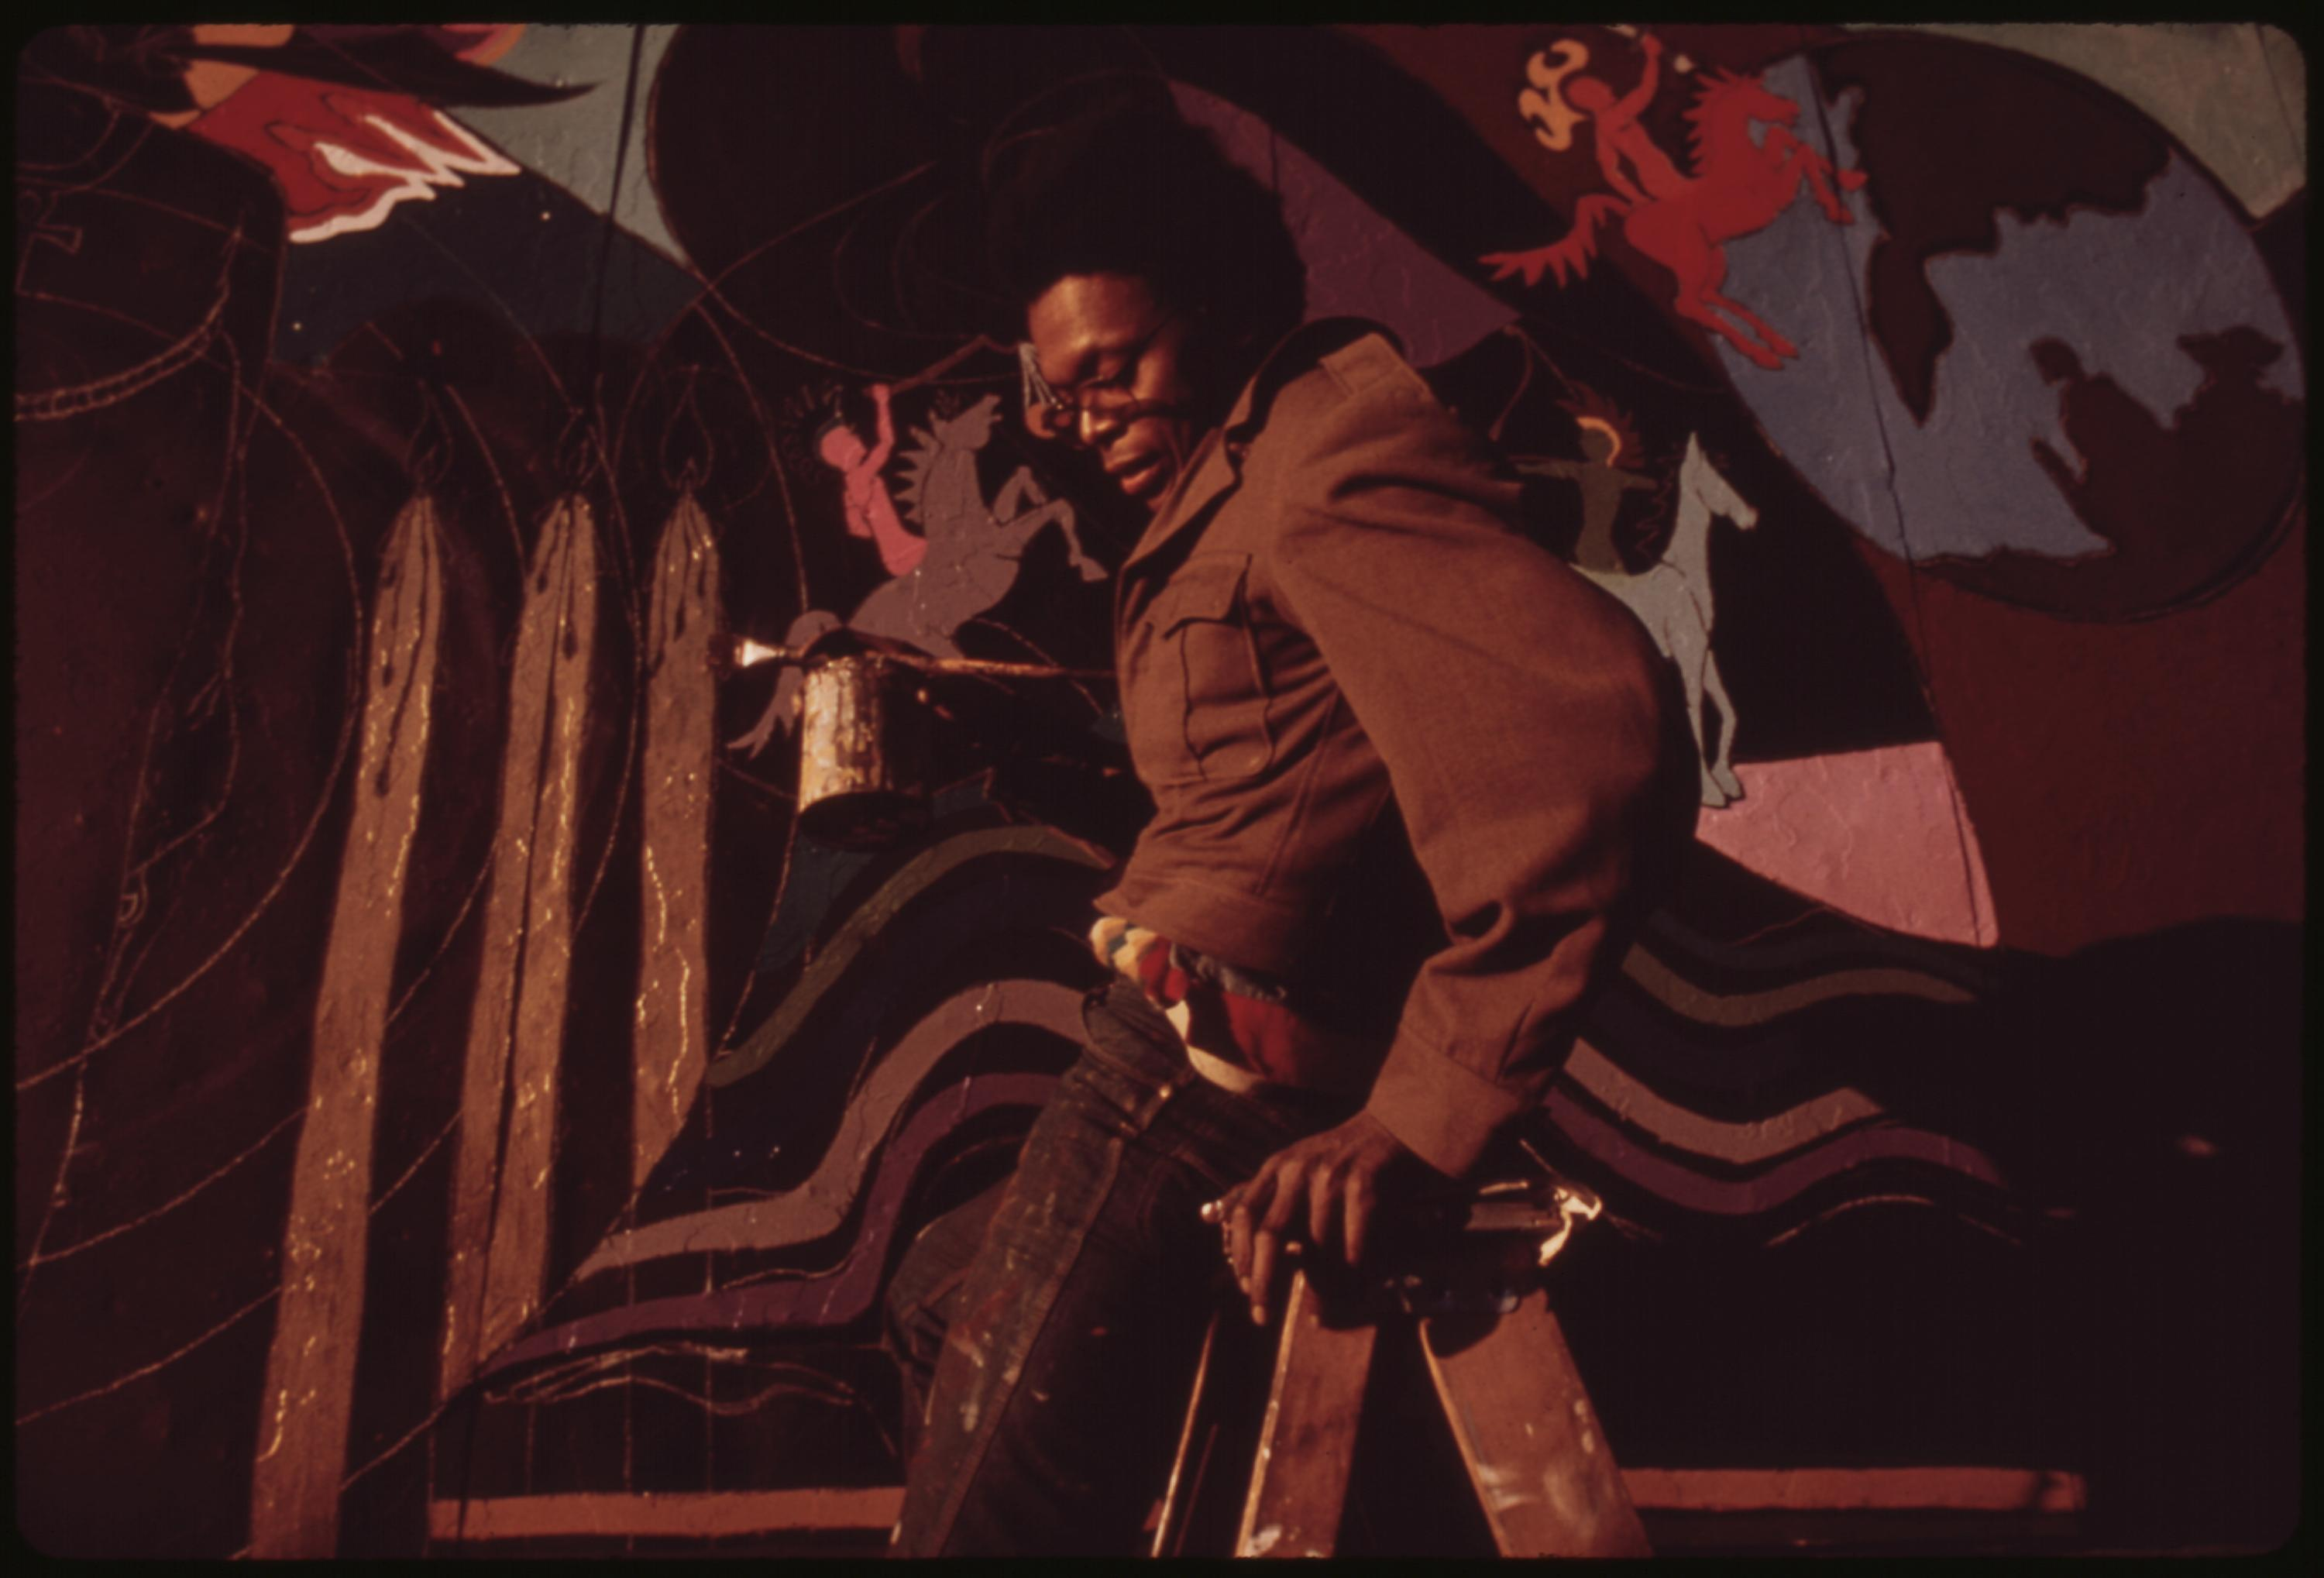 Artist Ron Blackburn Painting An Outdoor Wall Mural At The Corner Of 33rd And Giles Streets In Chicago. He Is One Of Many Artists Painting In The City's Black Communities, 06:1973